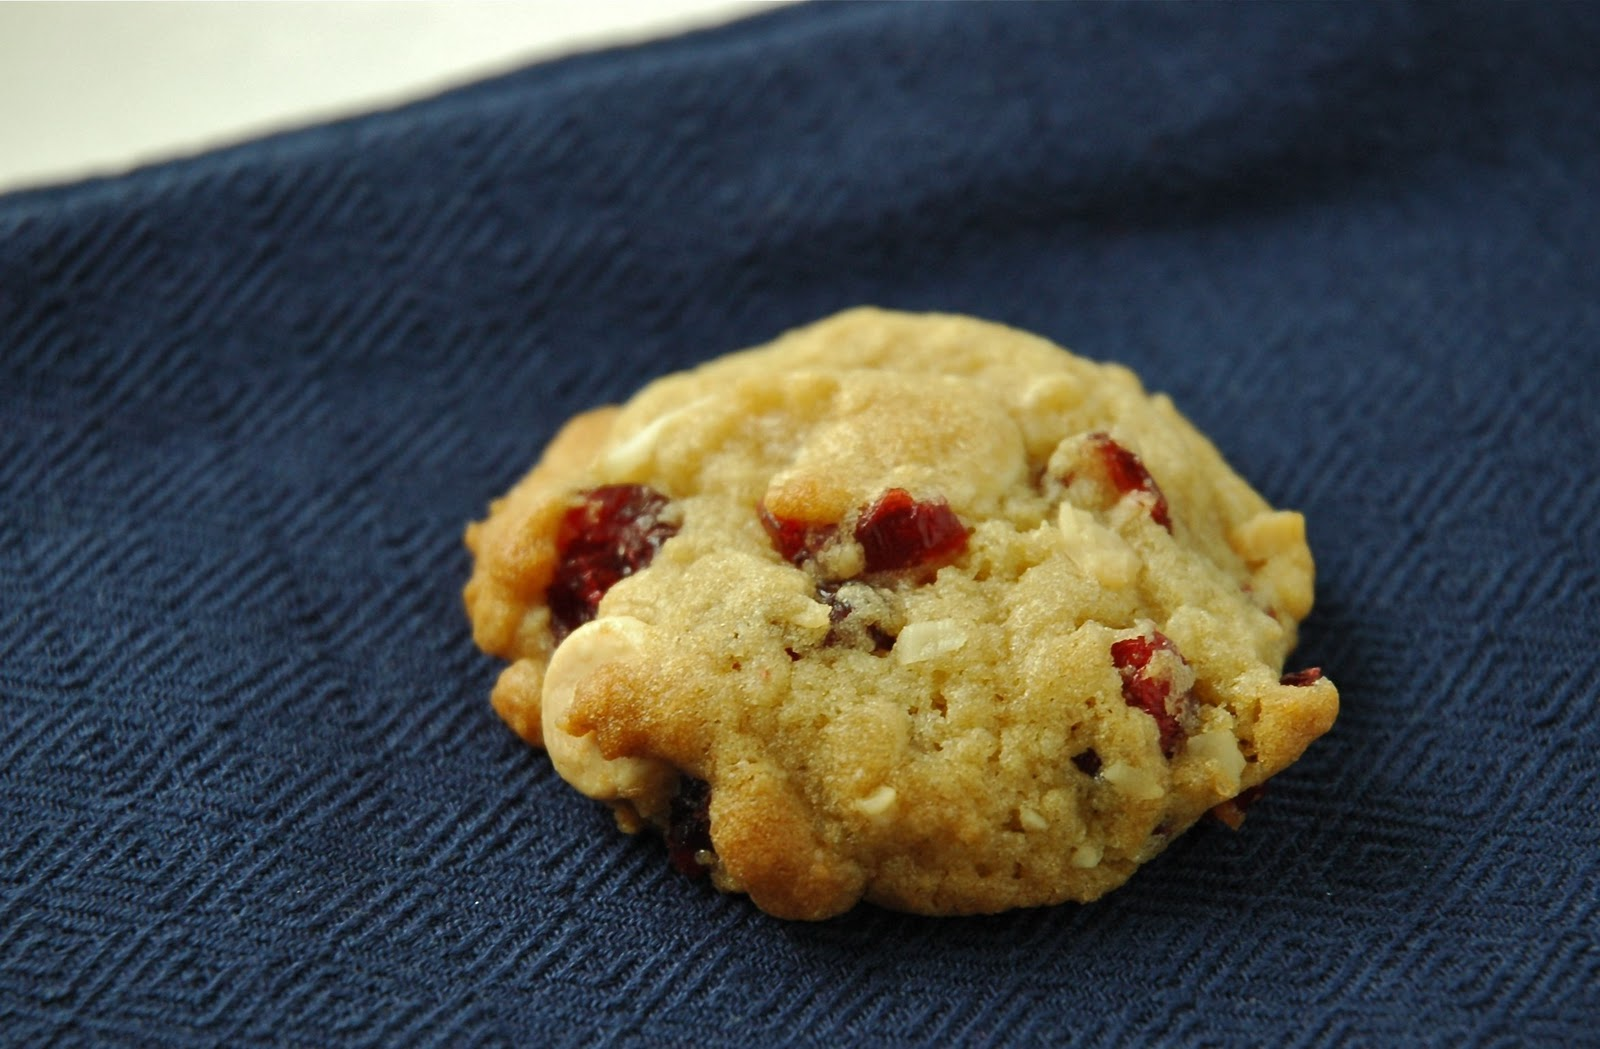 ... my Sweet Time: White Chocolate, Cranberry, Macadamia Nut Cookies